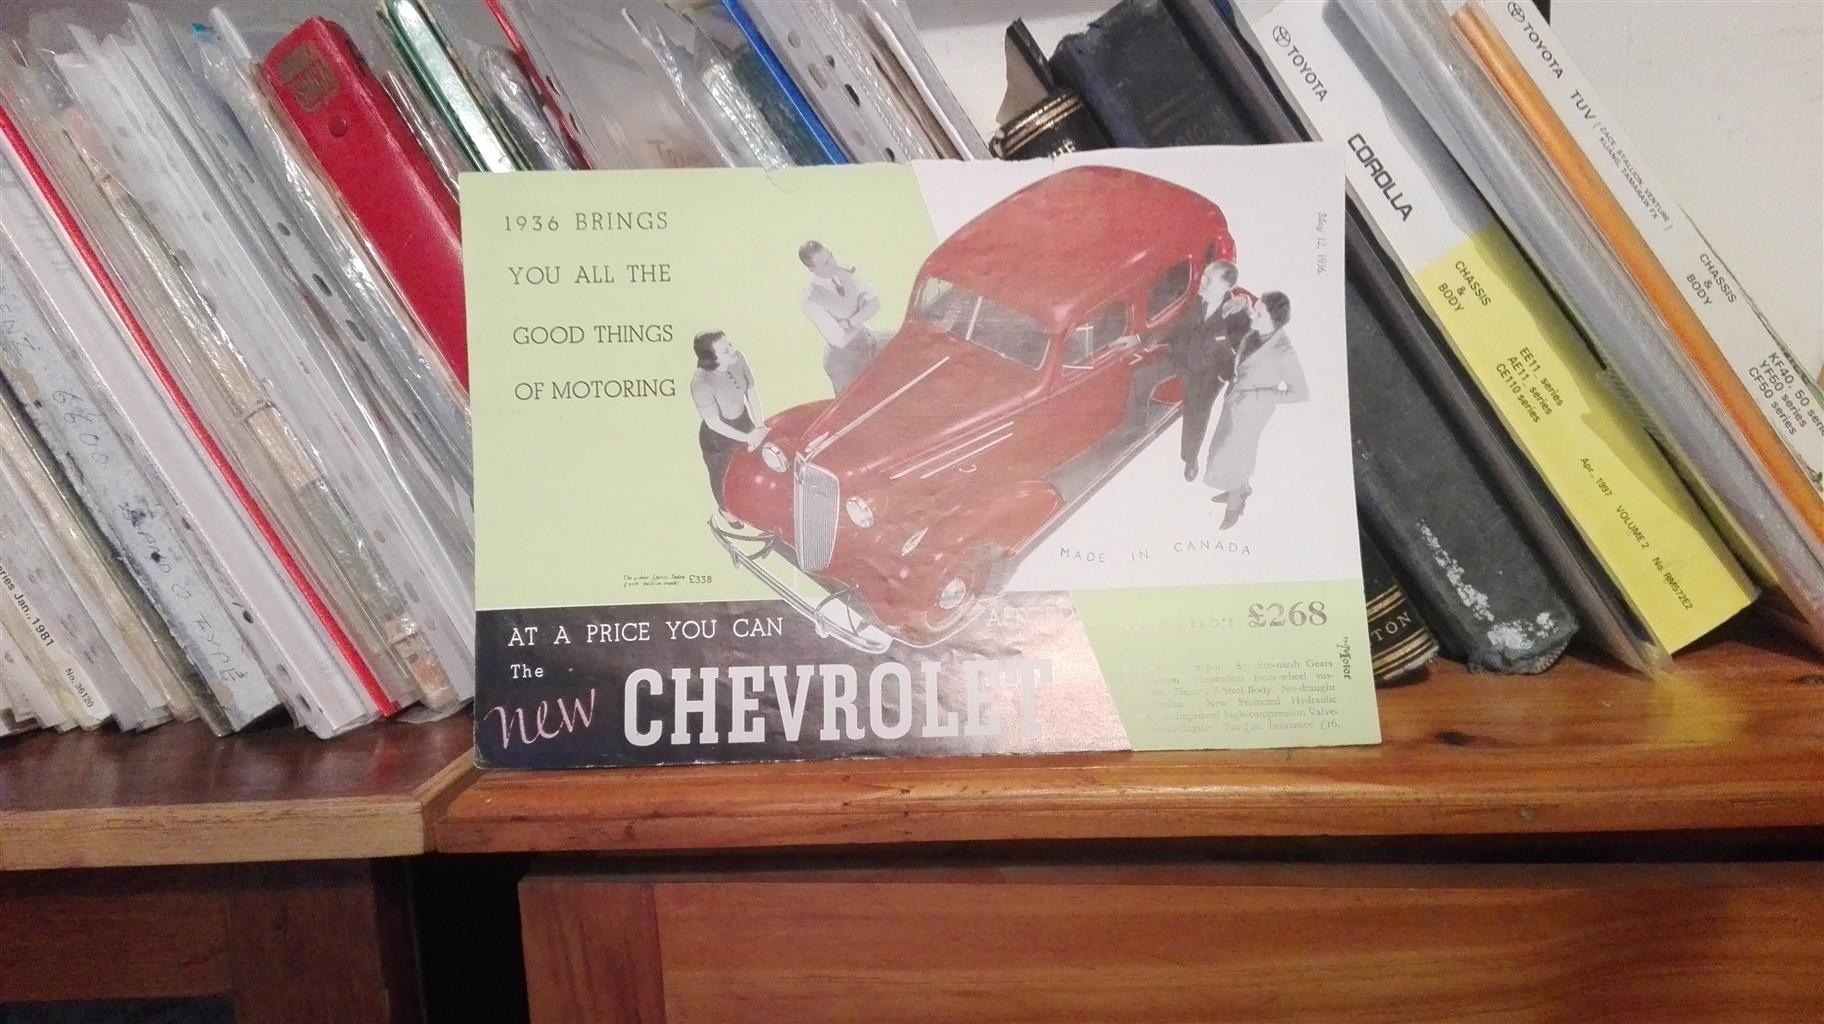 Chevrolet 1936: picture